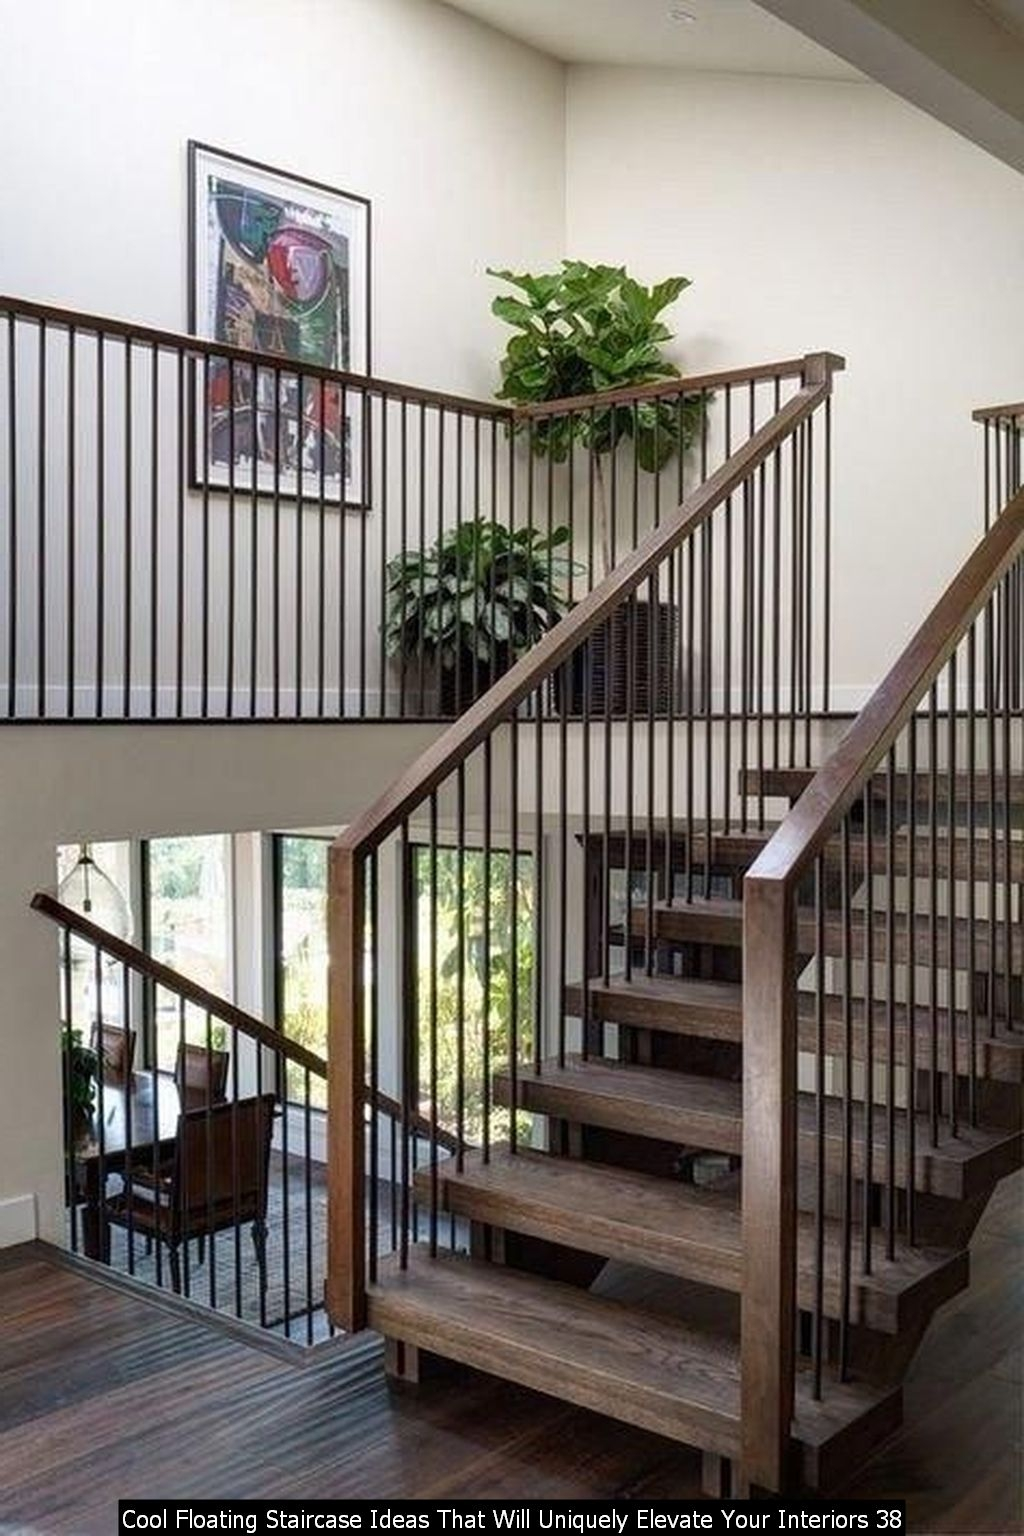 Cool Floating Staircase Ideas That Will Uniquely Elevate Your Interiors 38